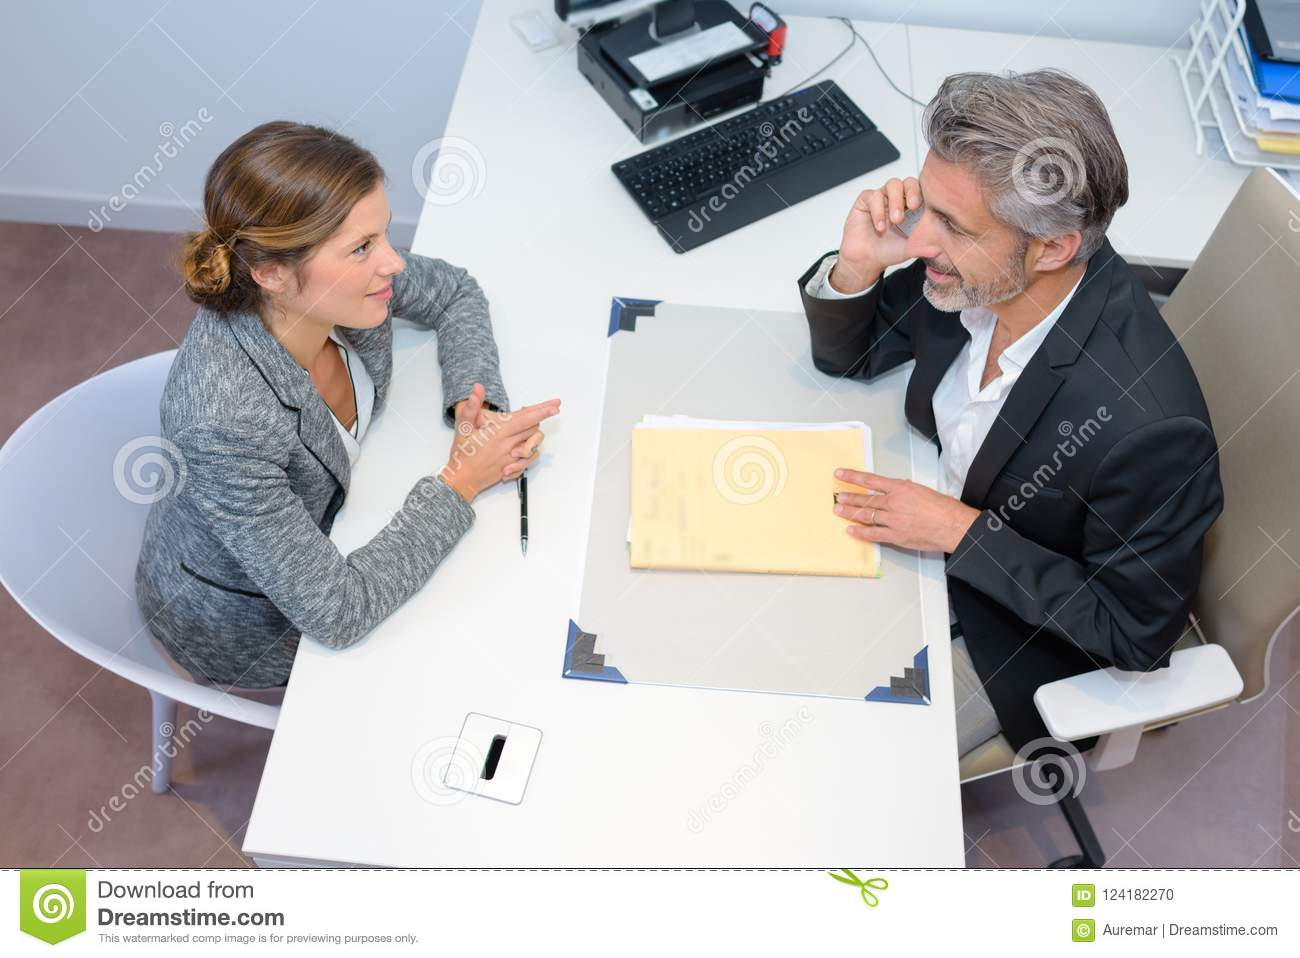 Business meeting discussing documents in office